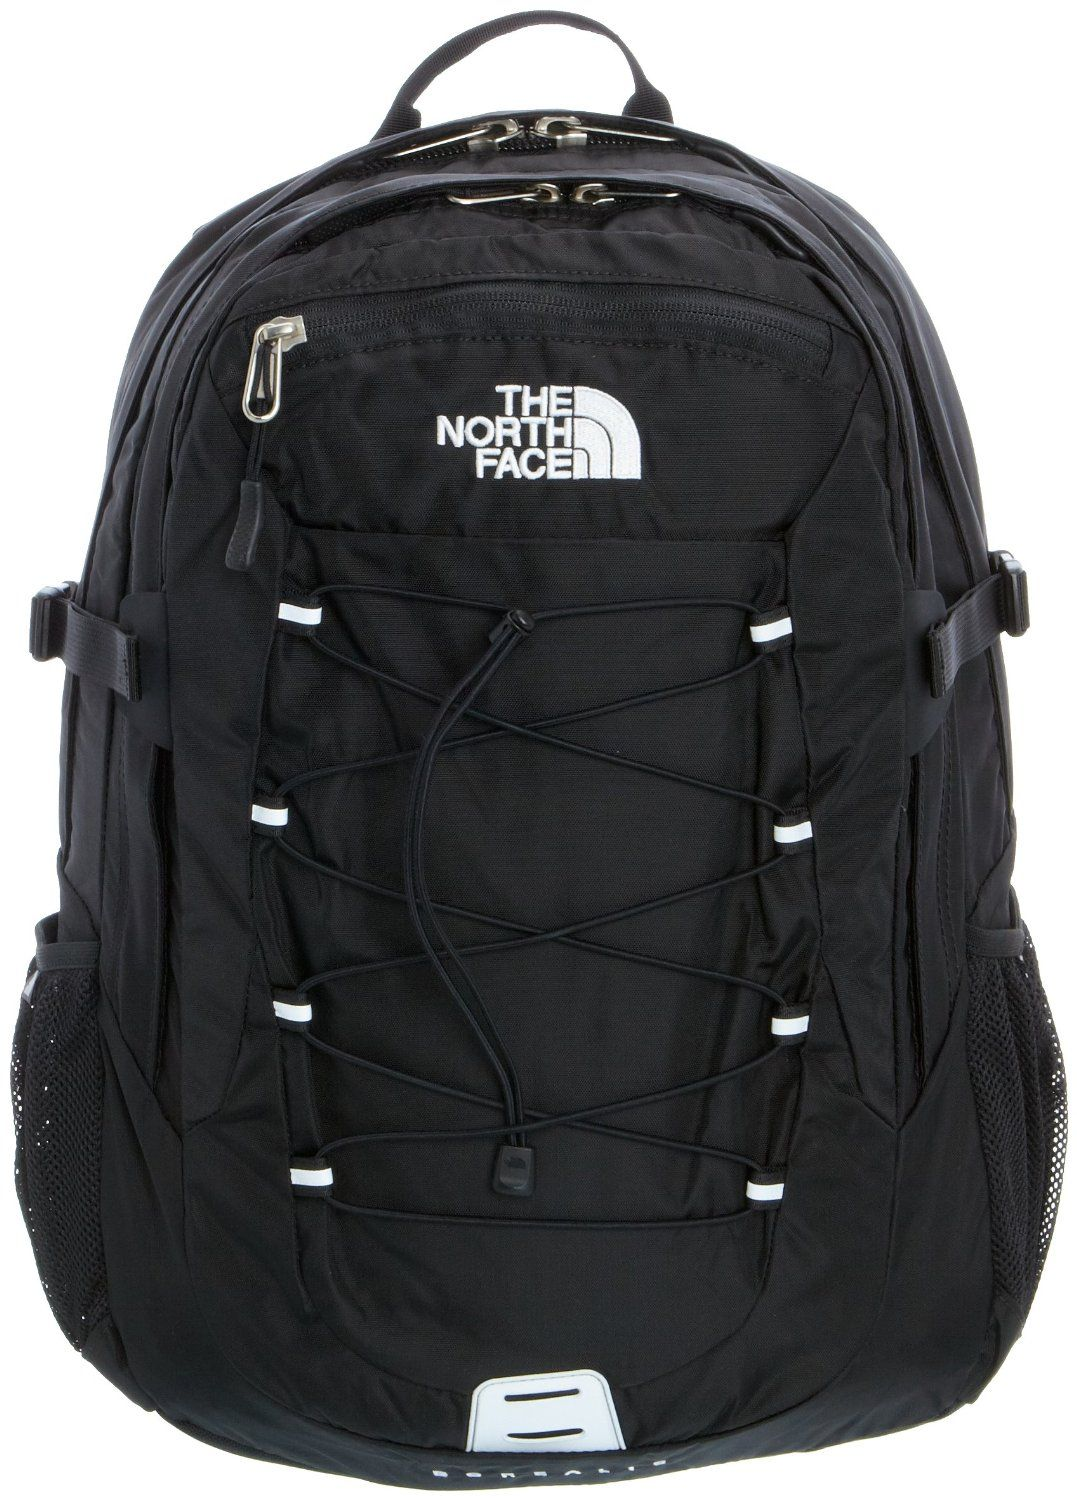 north face ladies backpack computer for my MacBook pro laptop ... 40000af476e0